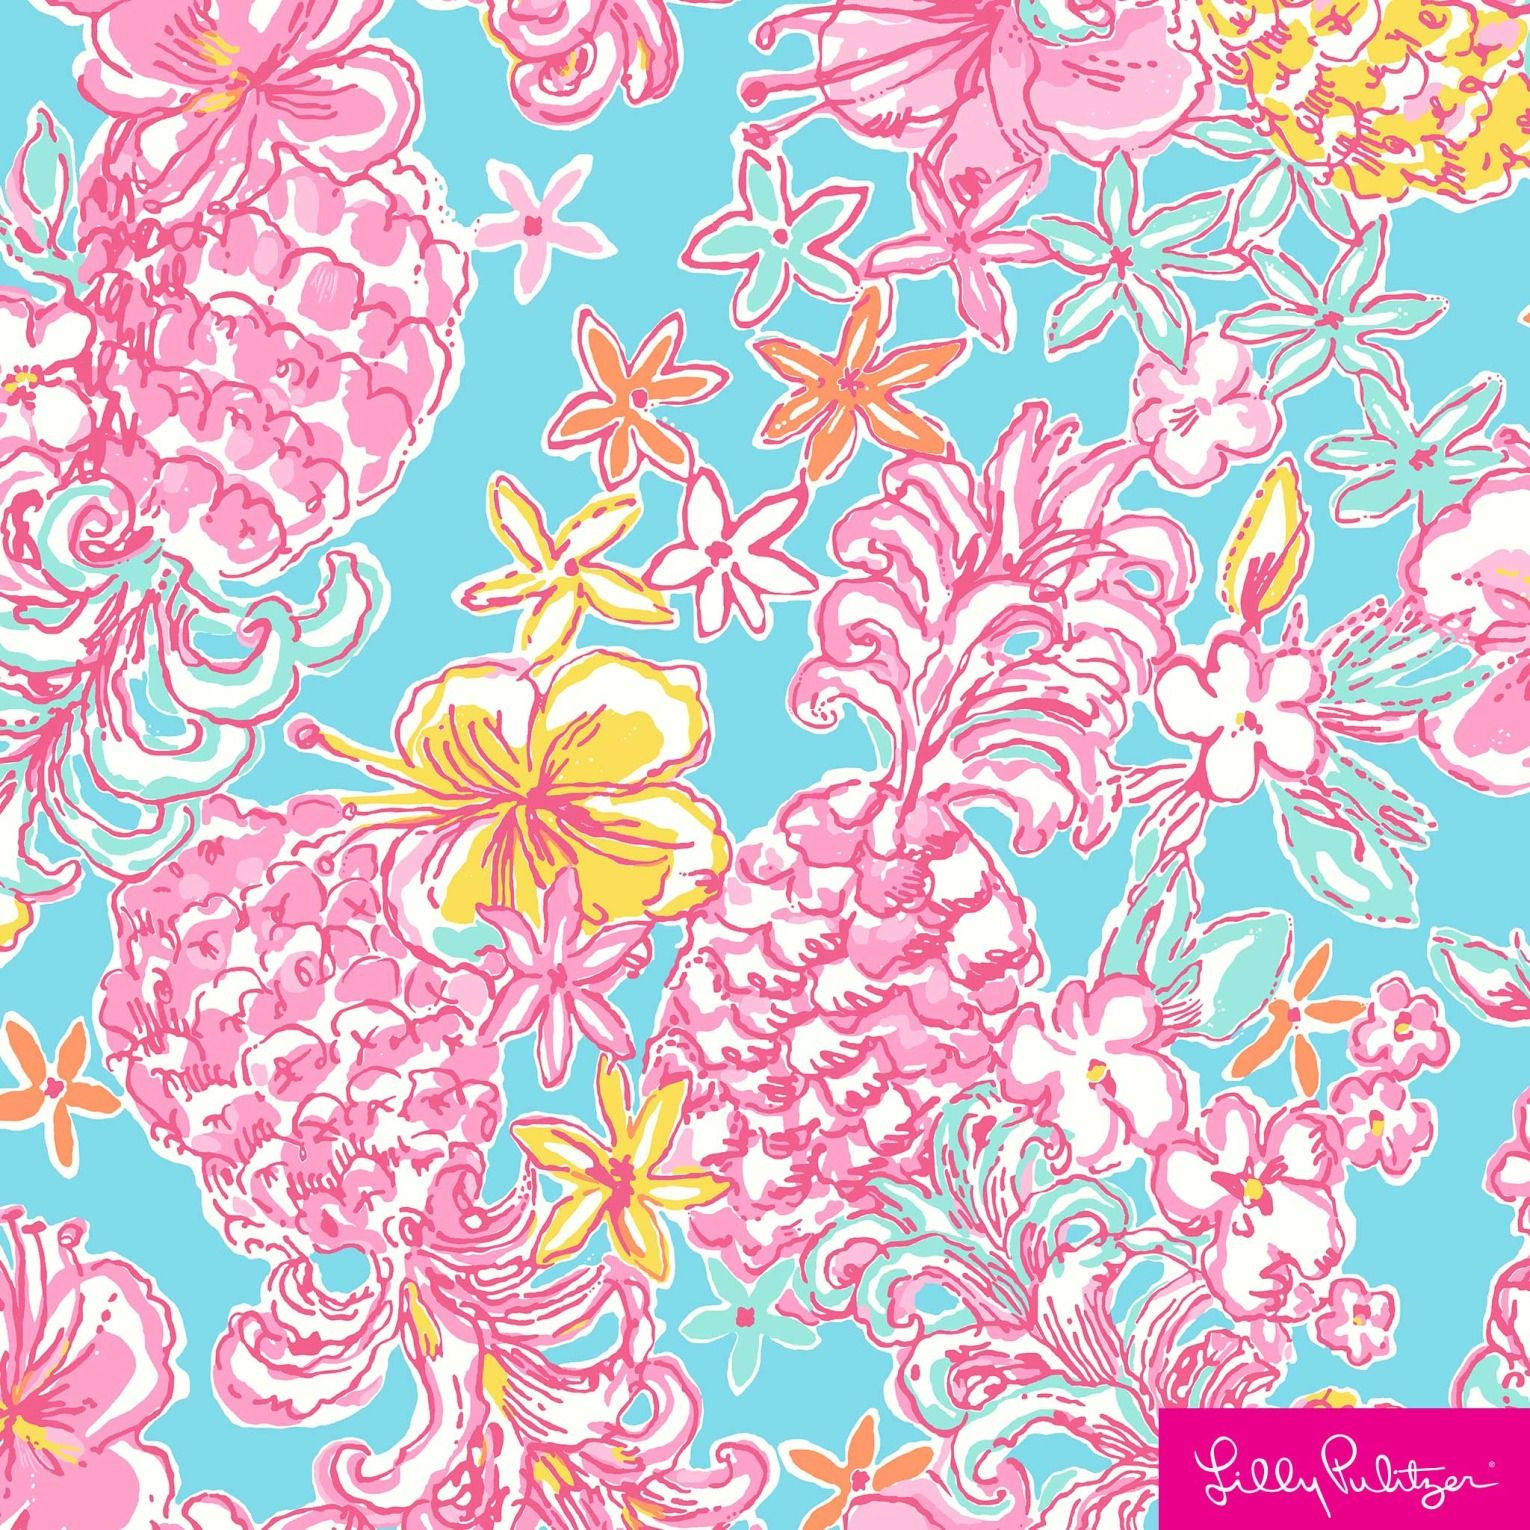 Large pink pineapples and yellow hibiscus flowers on a soft blue background